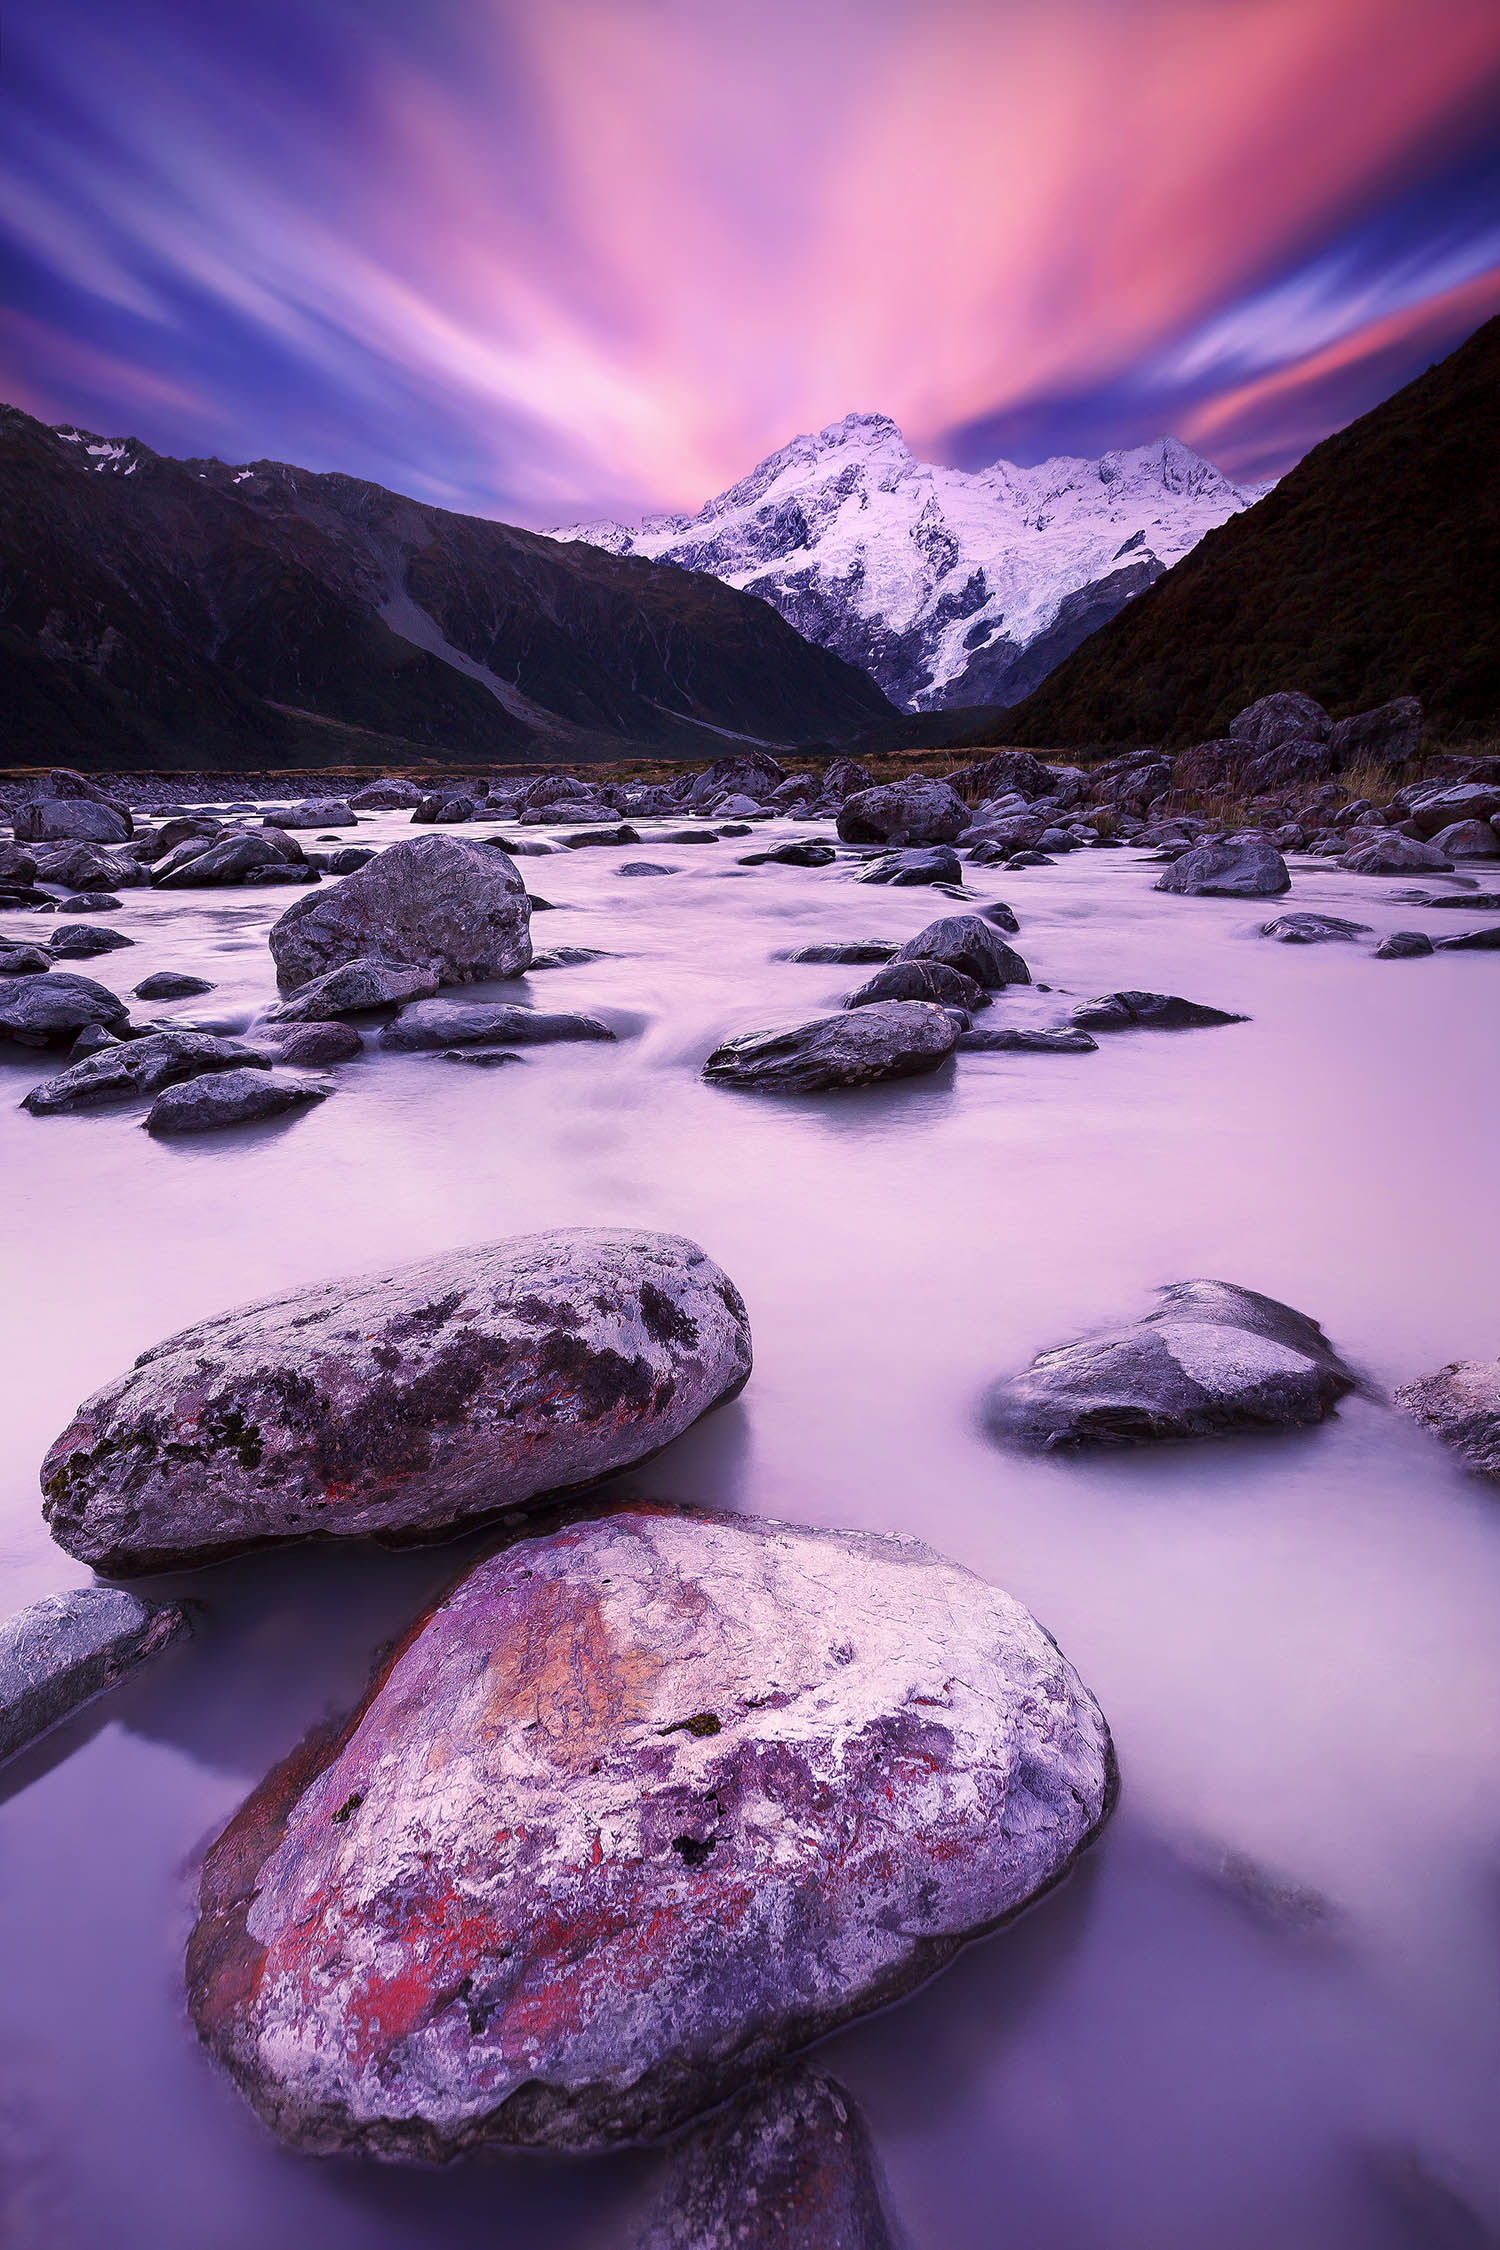 Aoraki / Mount Cook National Park, New Zealand